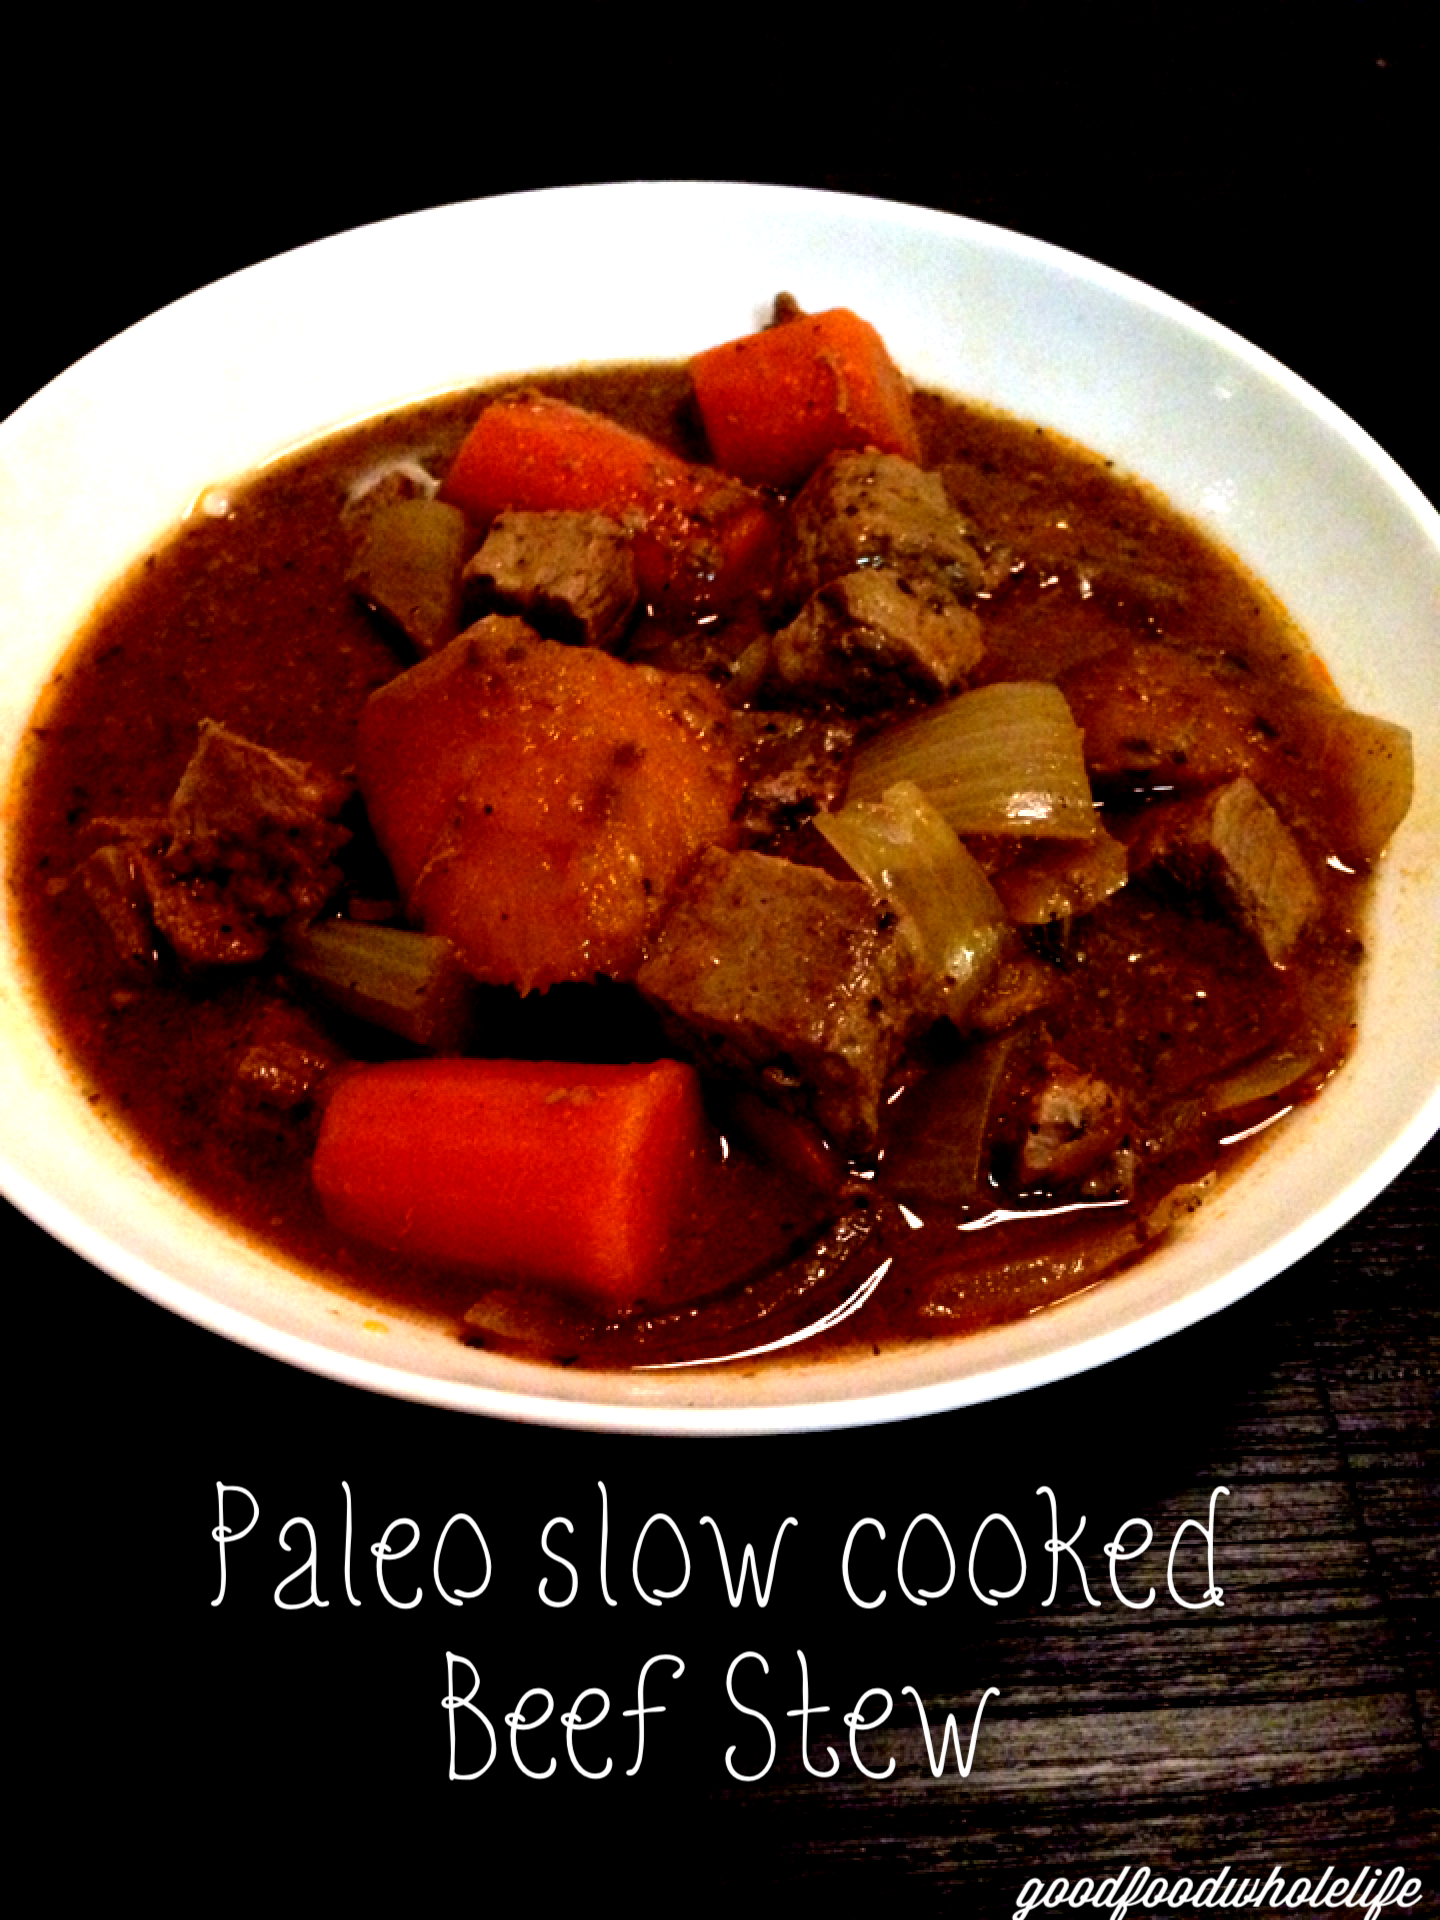 Paleo slow cooked Beef Stew | goodfoodwholelife